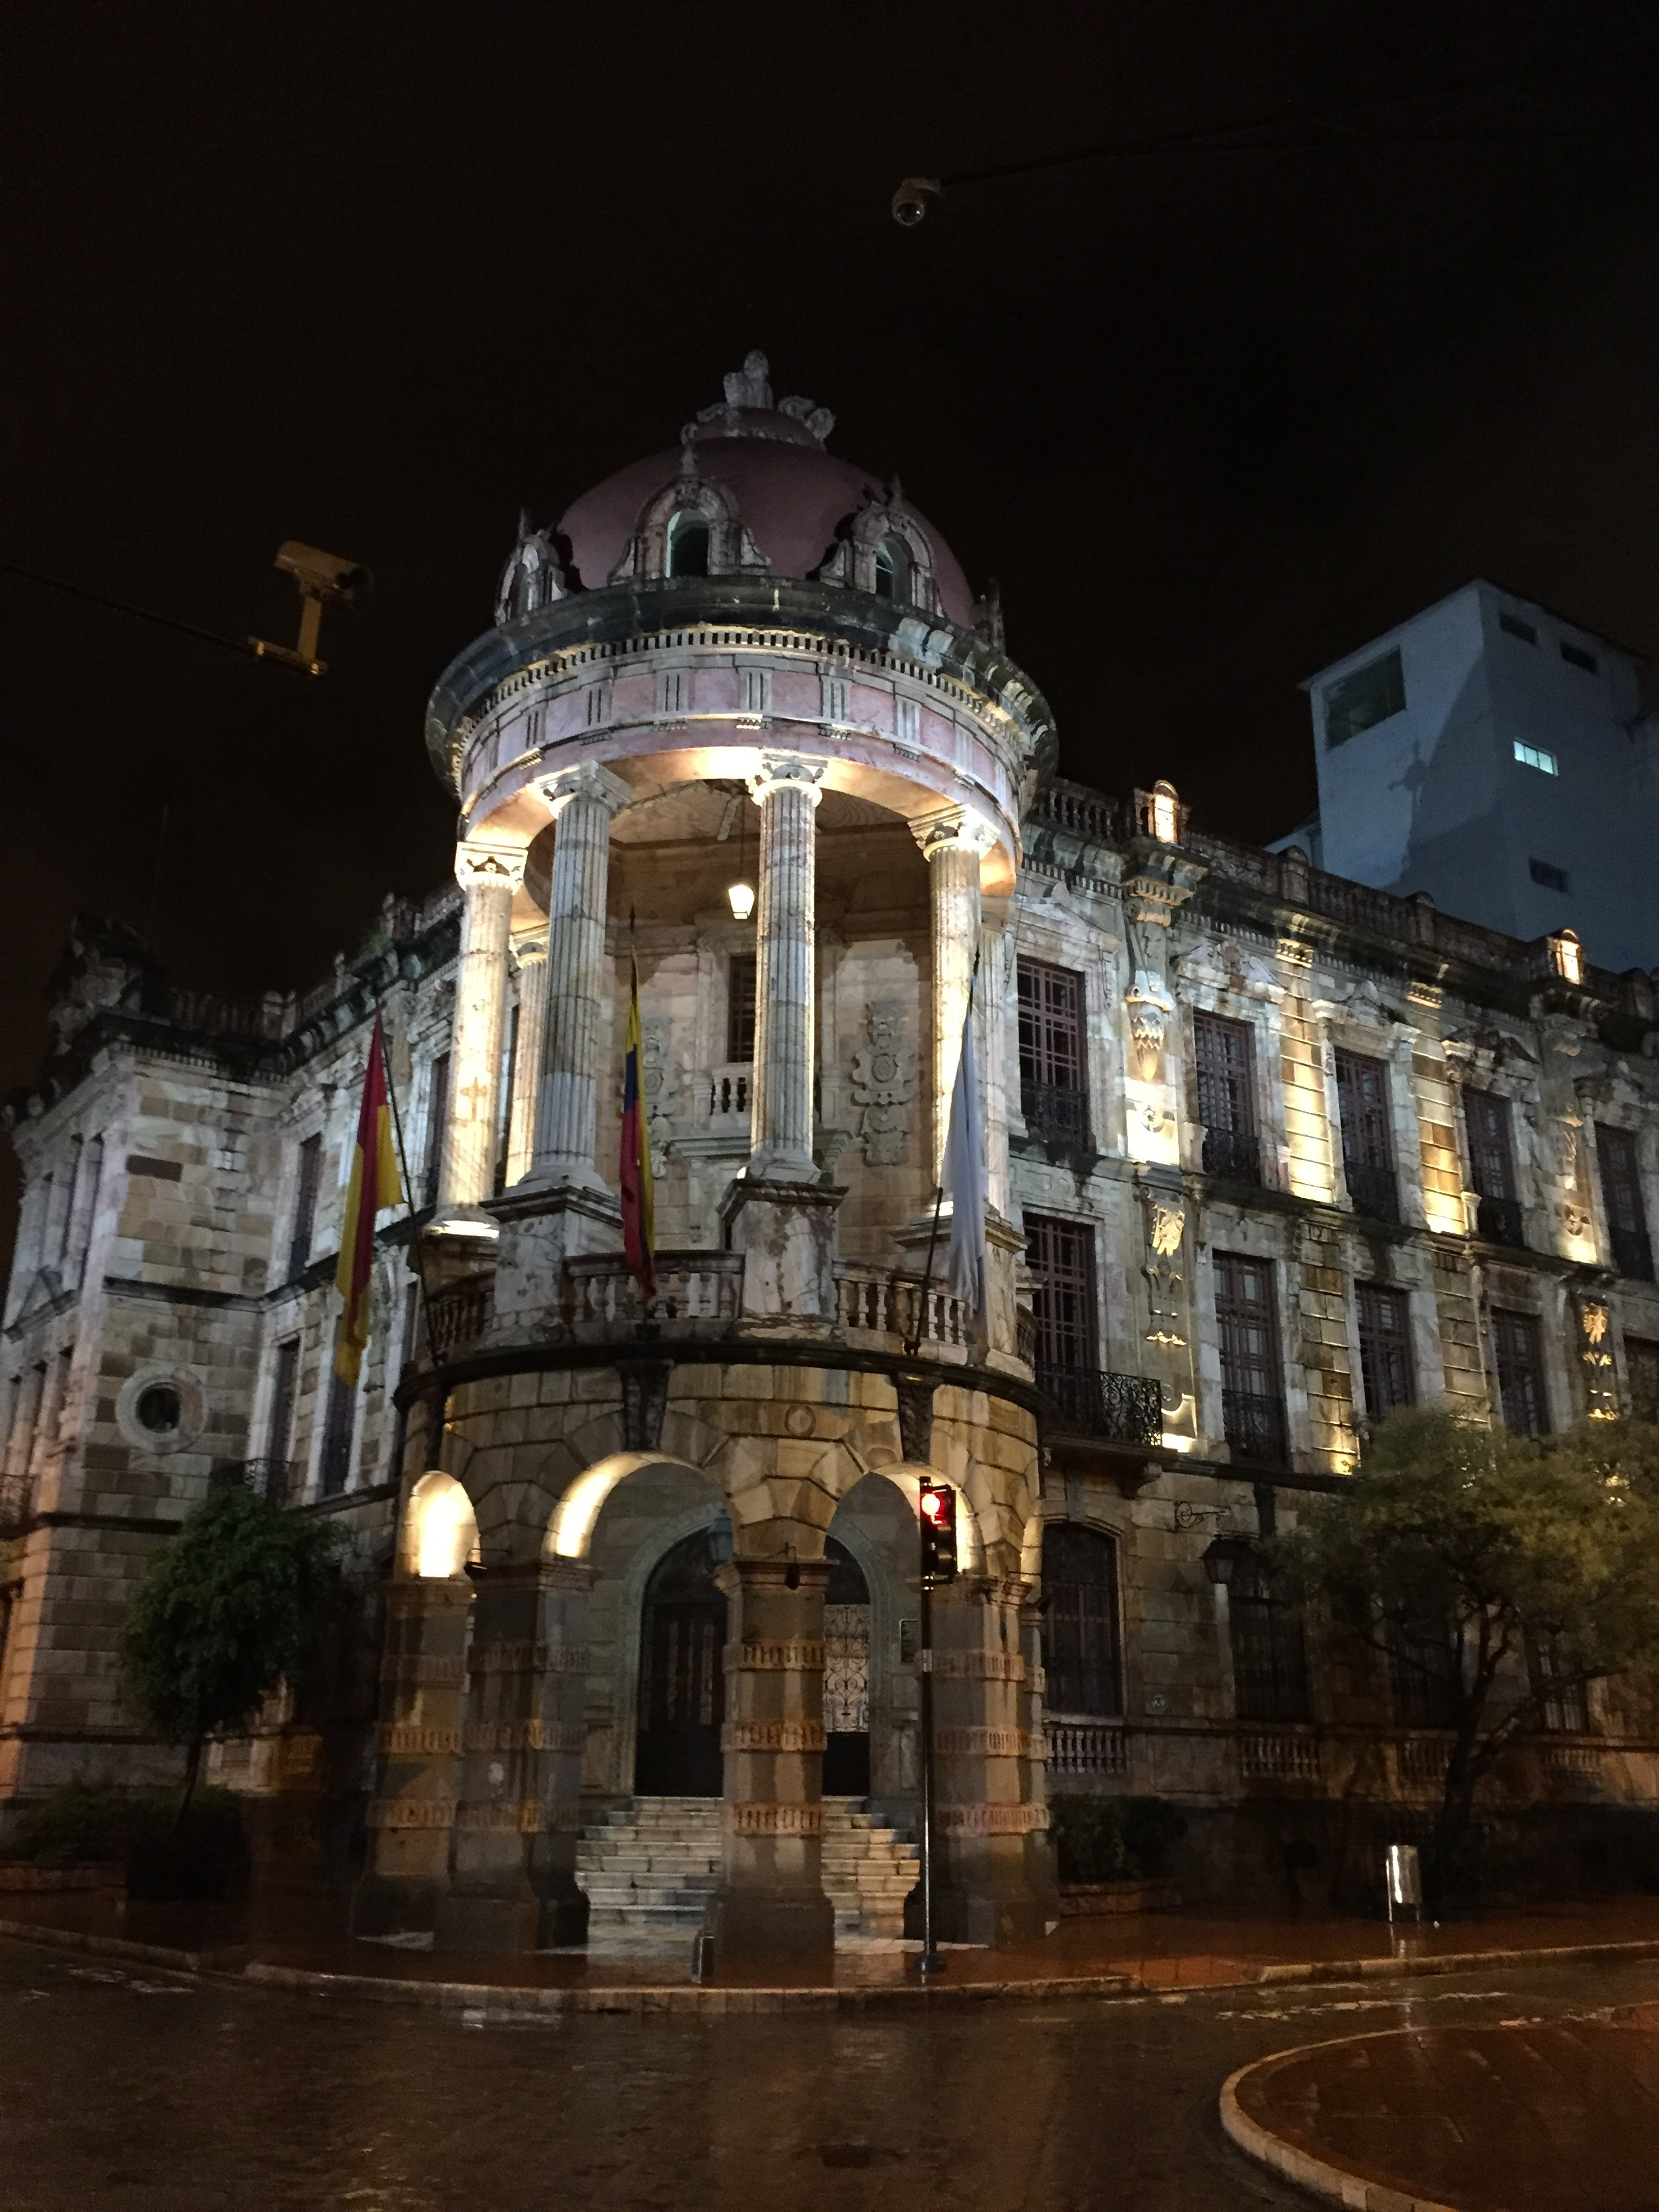 Historic limestone building lit up at night in downtown Cuenca, Ecuador.